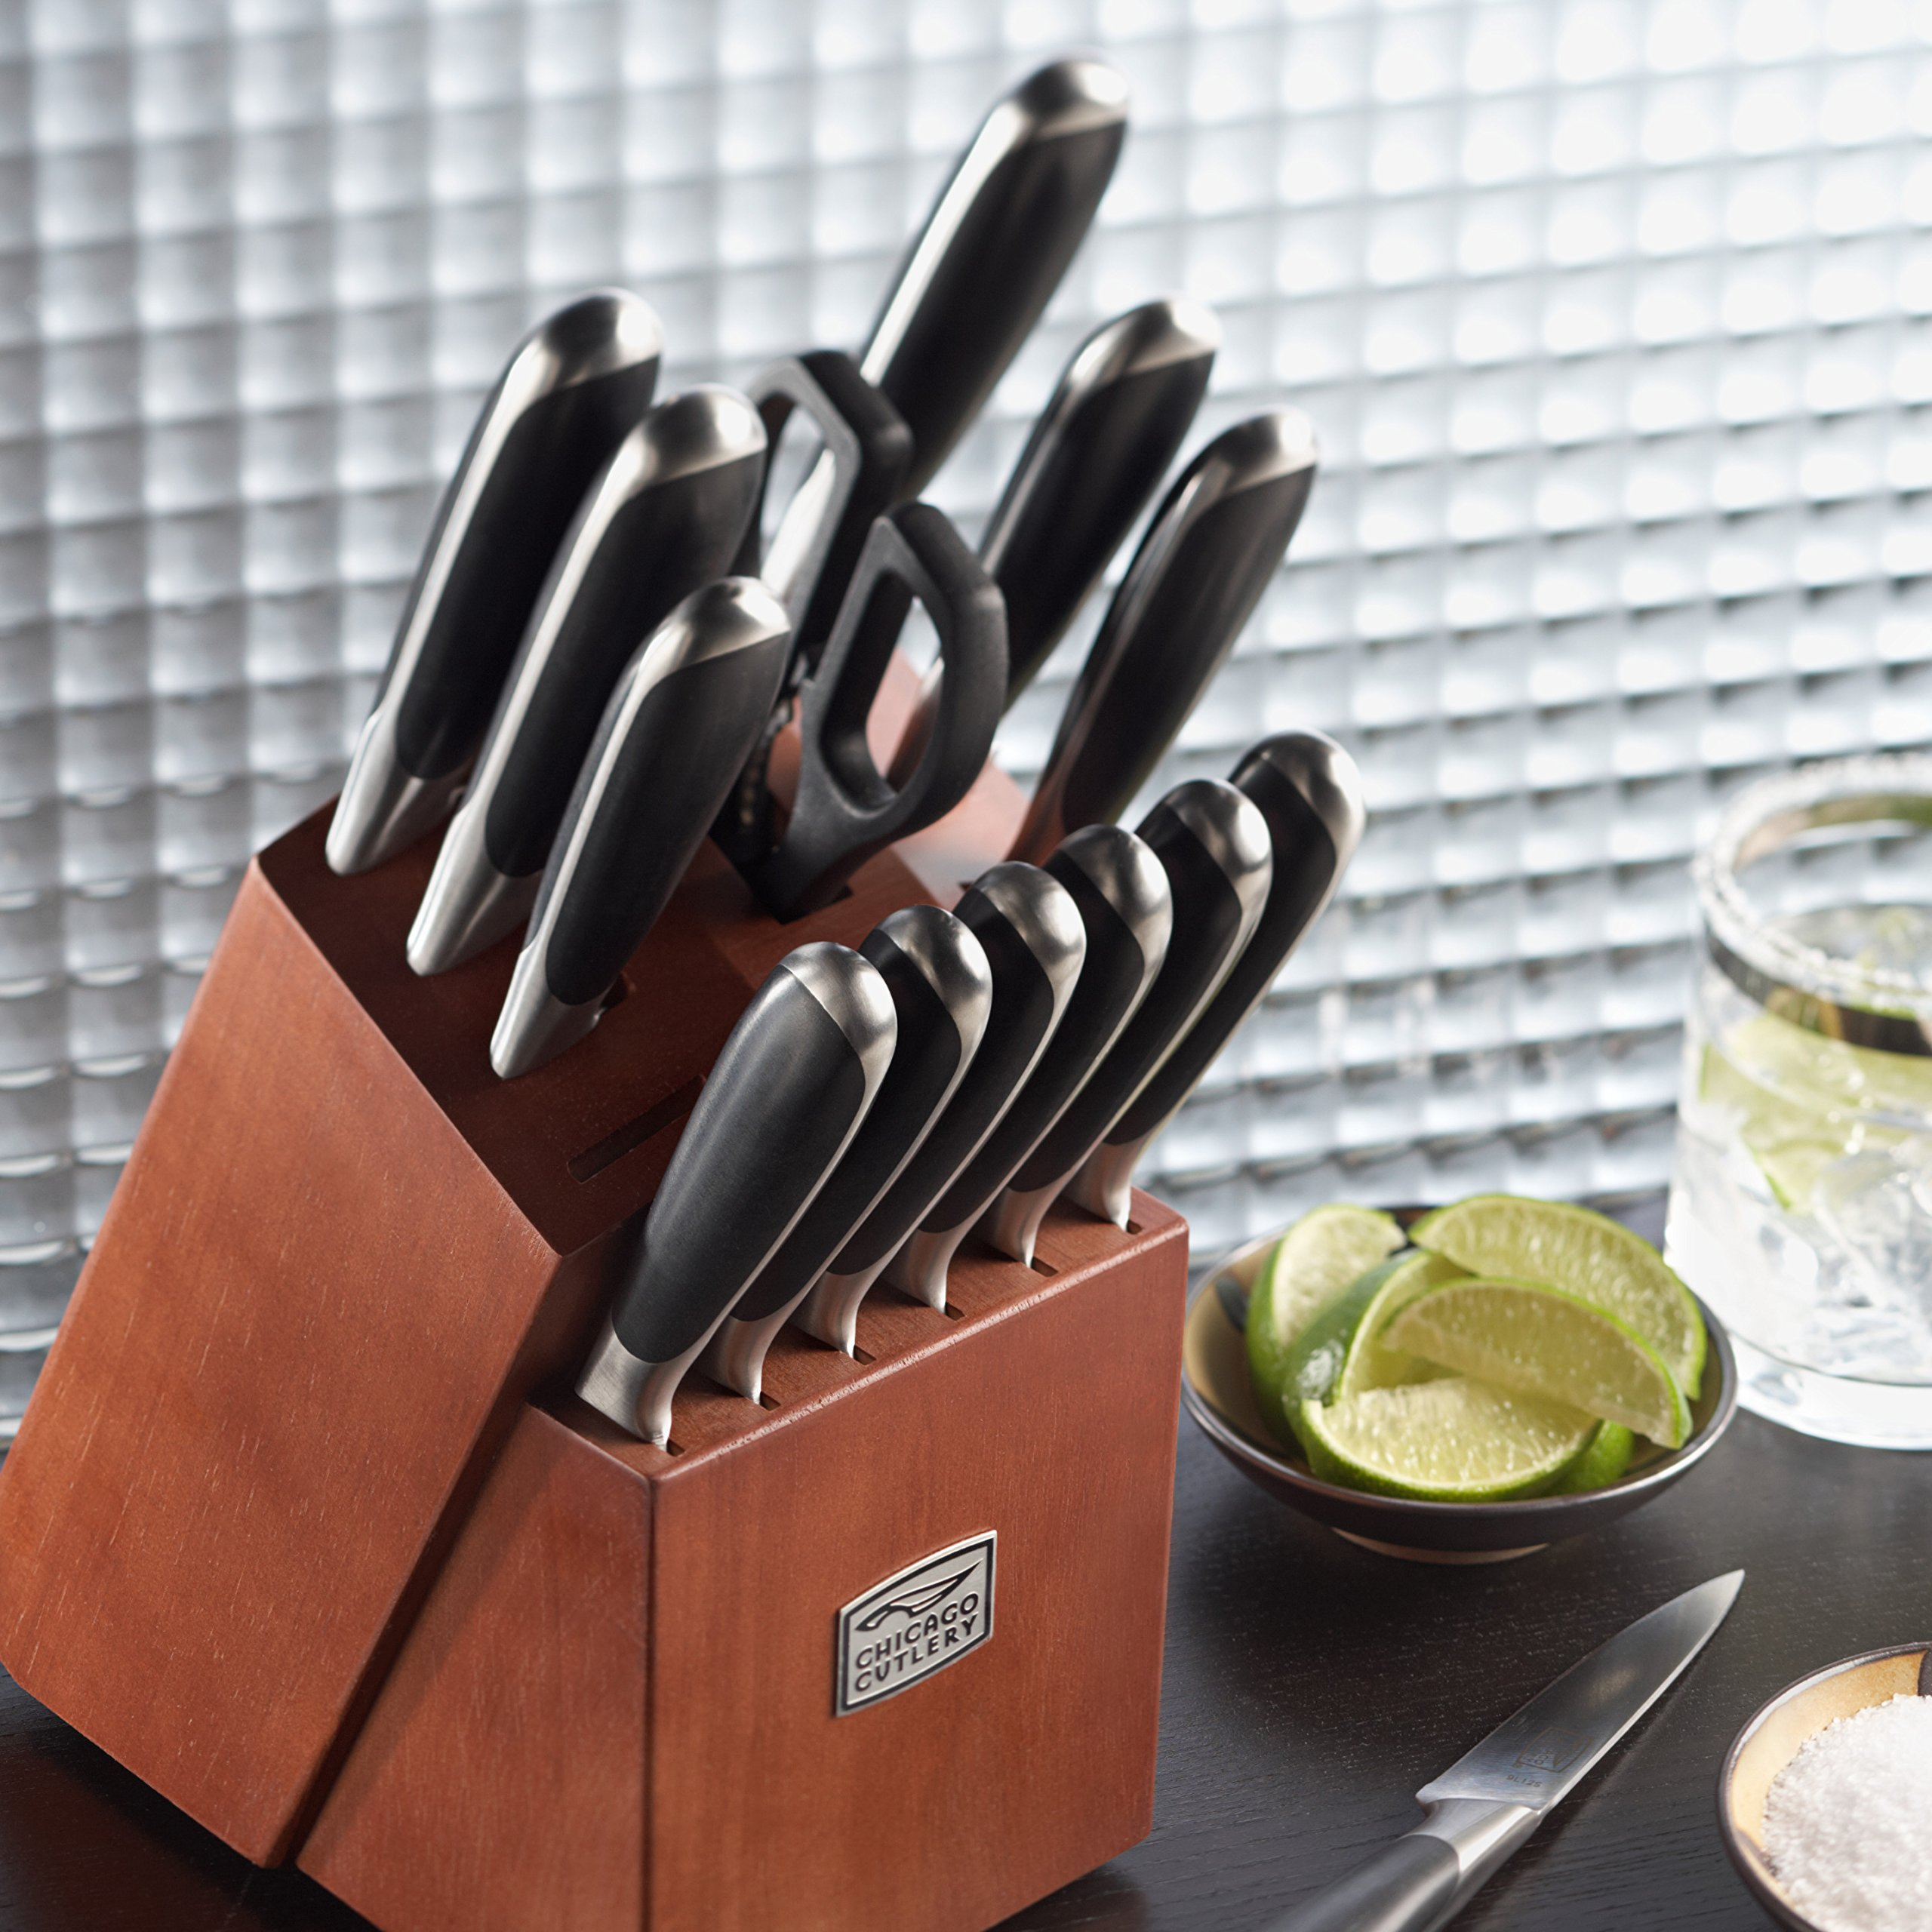 Chicago Cutlery Belden 15-Piece Block Knife Set